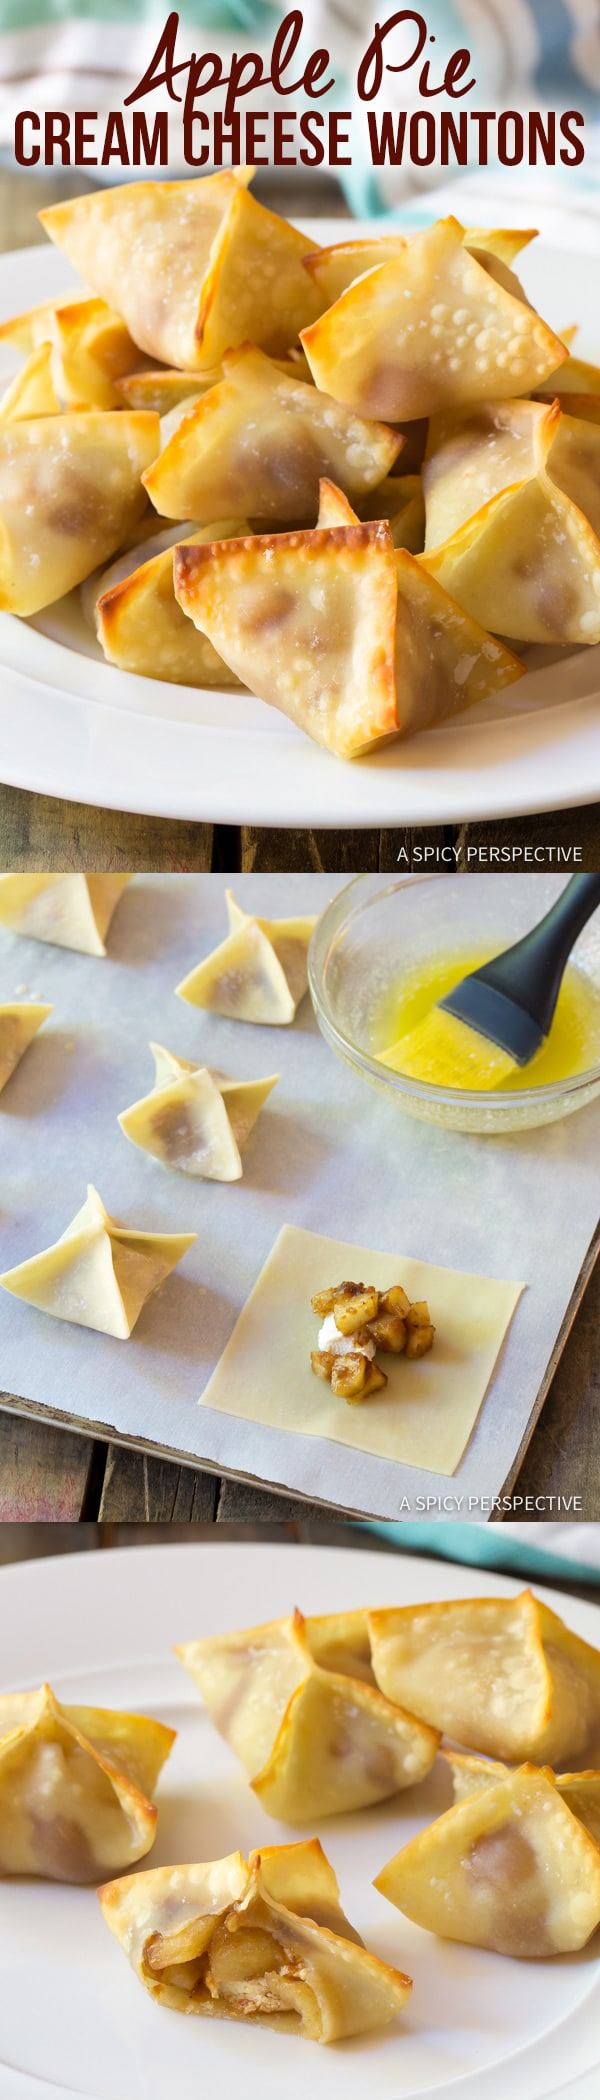 Easy 5-Ingredient Apple Pie Cream Cheese Wontons | ASpicyPerspective.com